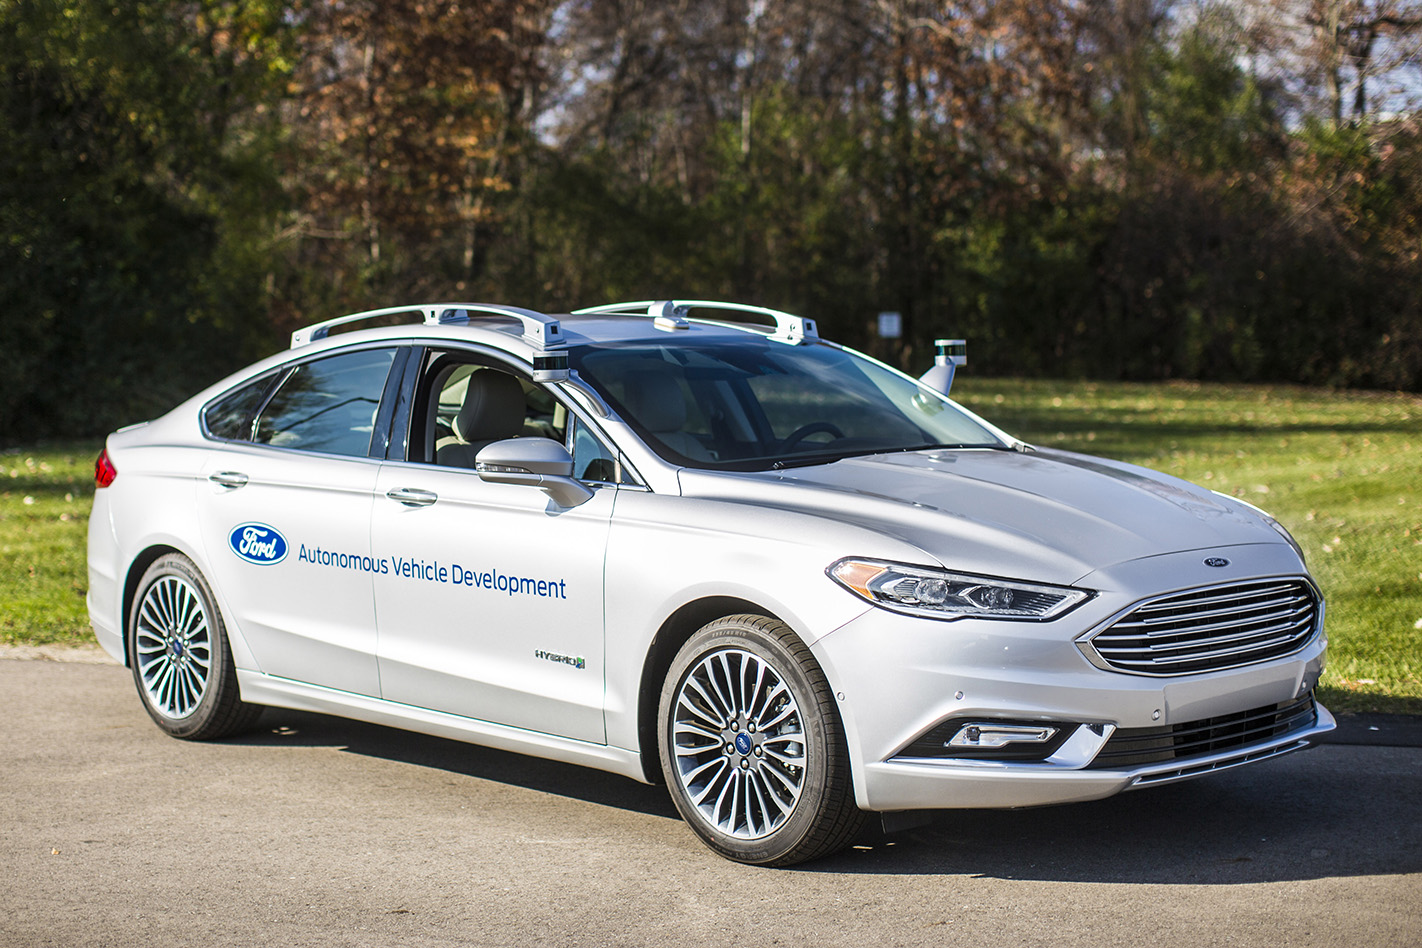 Ford -Fusion -autonomous -front -side -static